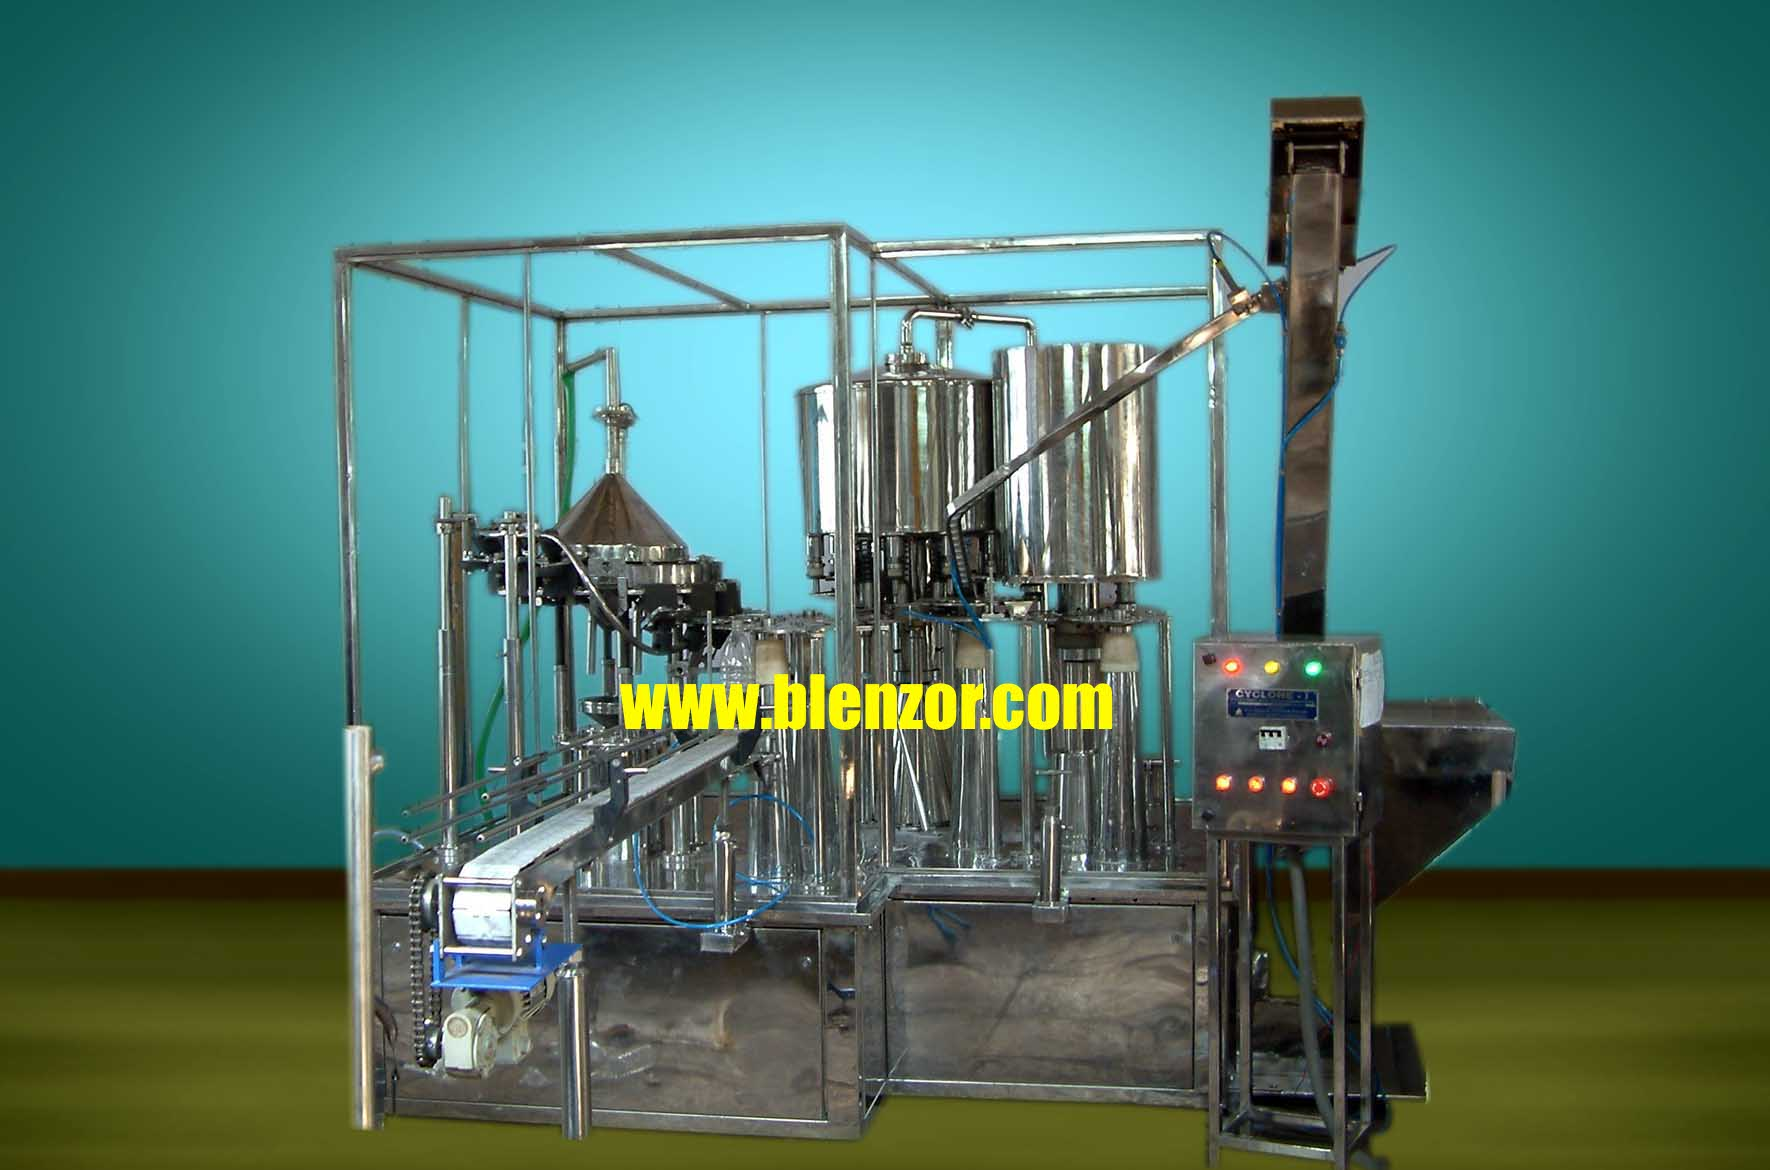 Blenzor Machine